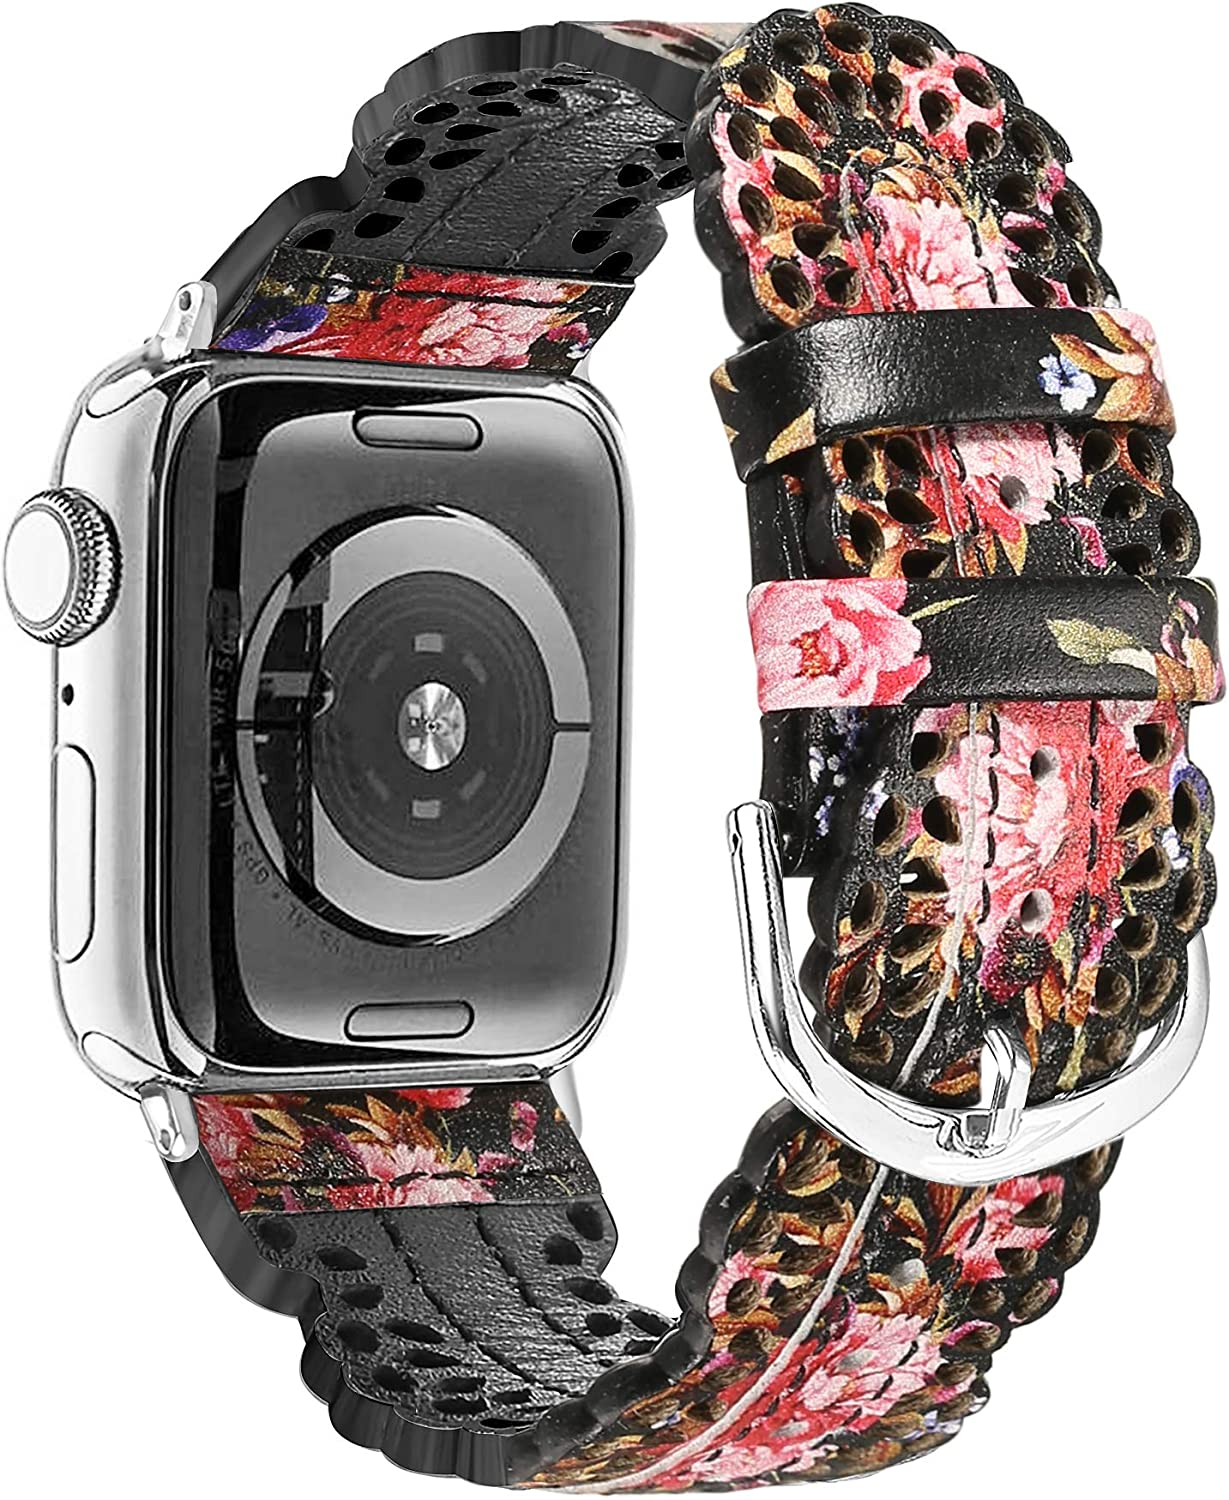 Secbolt Leather Bands Compatible with Apple Watch Band 42mm 44mm iWatch Series 5 4 3 2 1, Chic Lace Leather Strap for Women, Black/Pink Floral (42mm/44mm)